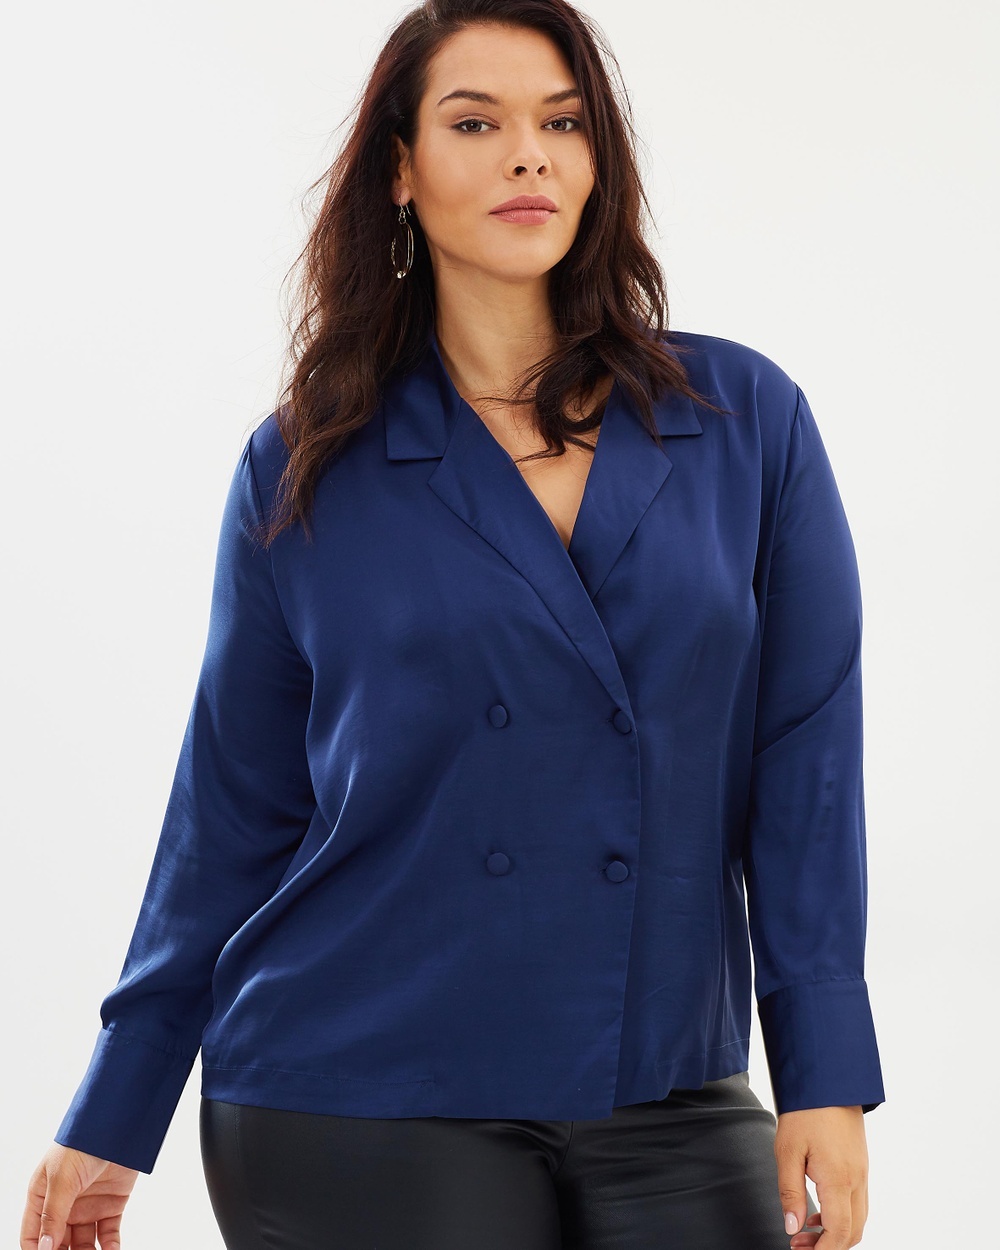 Atmos & Here Curvy ICONIC EXCLUSIVE Erin Tuxedo Top Tops Navy ICONIC EXCLUSIVE Erin Tuxedo Top